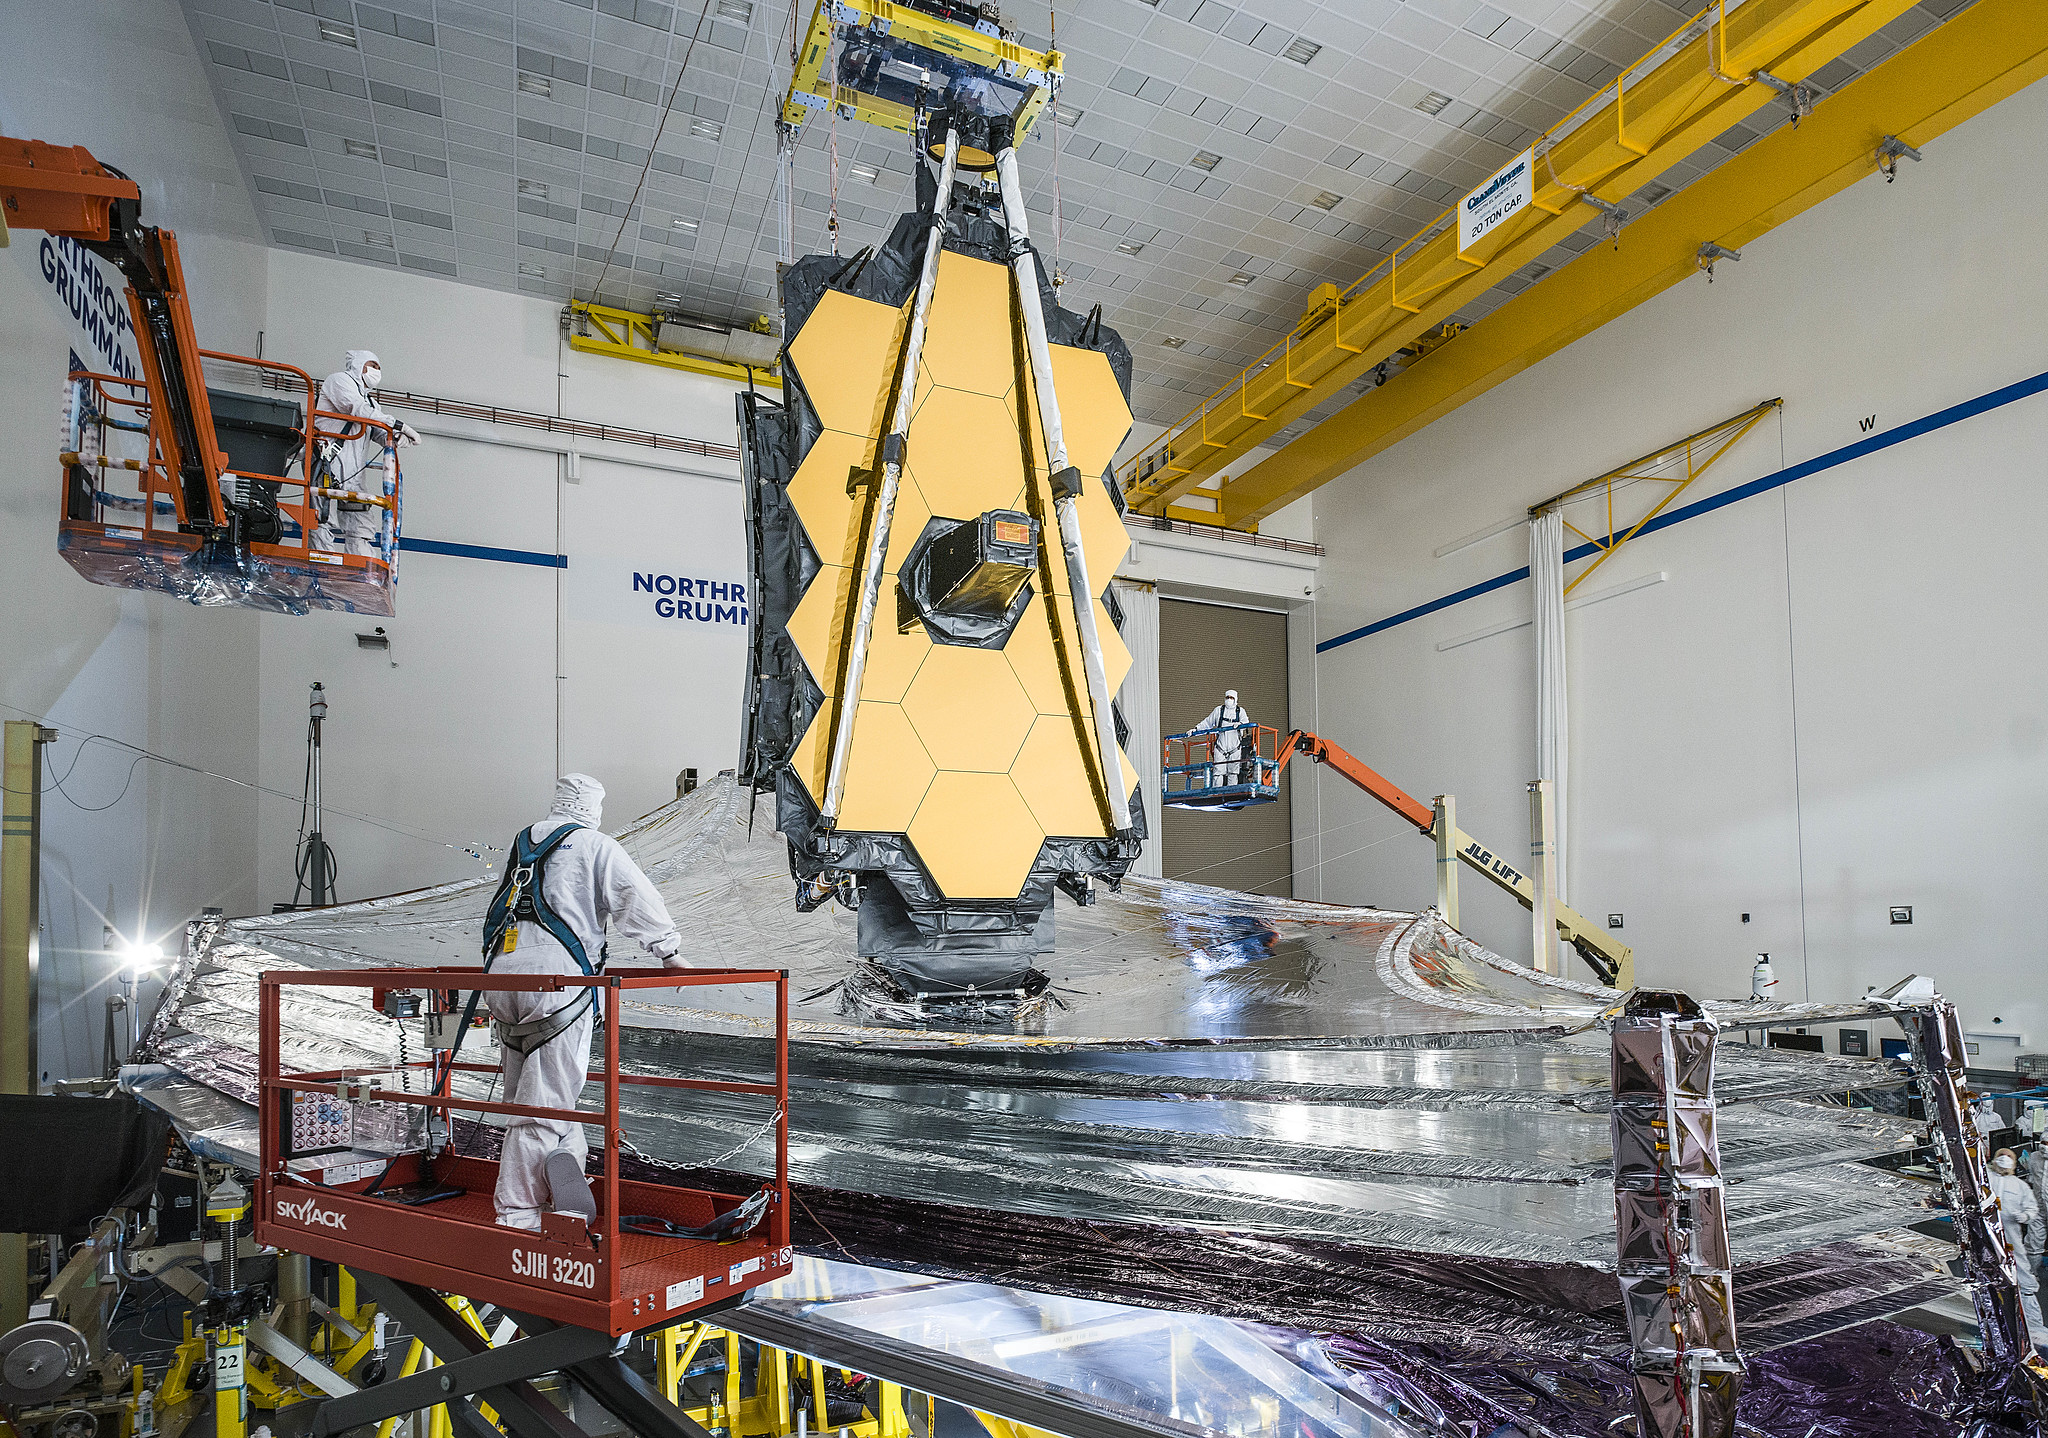 Technicians in white smocks stand on lifts looking at JWST's fully deployed sunshield in the cleanroom at Northrup Gruman. The five layers of the kite-shaped sunshield extend out around JWST's folded honeycomb-shaped mirror.